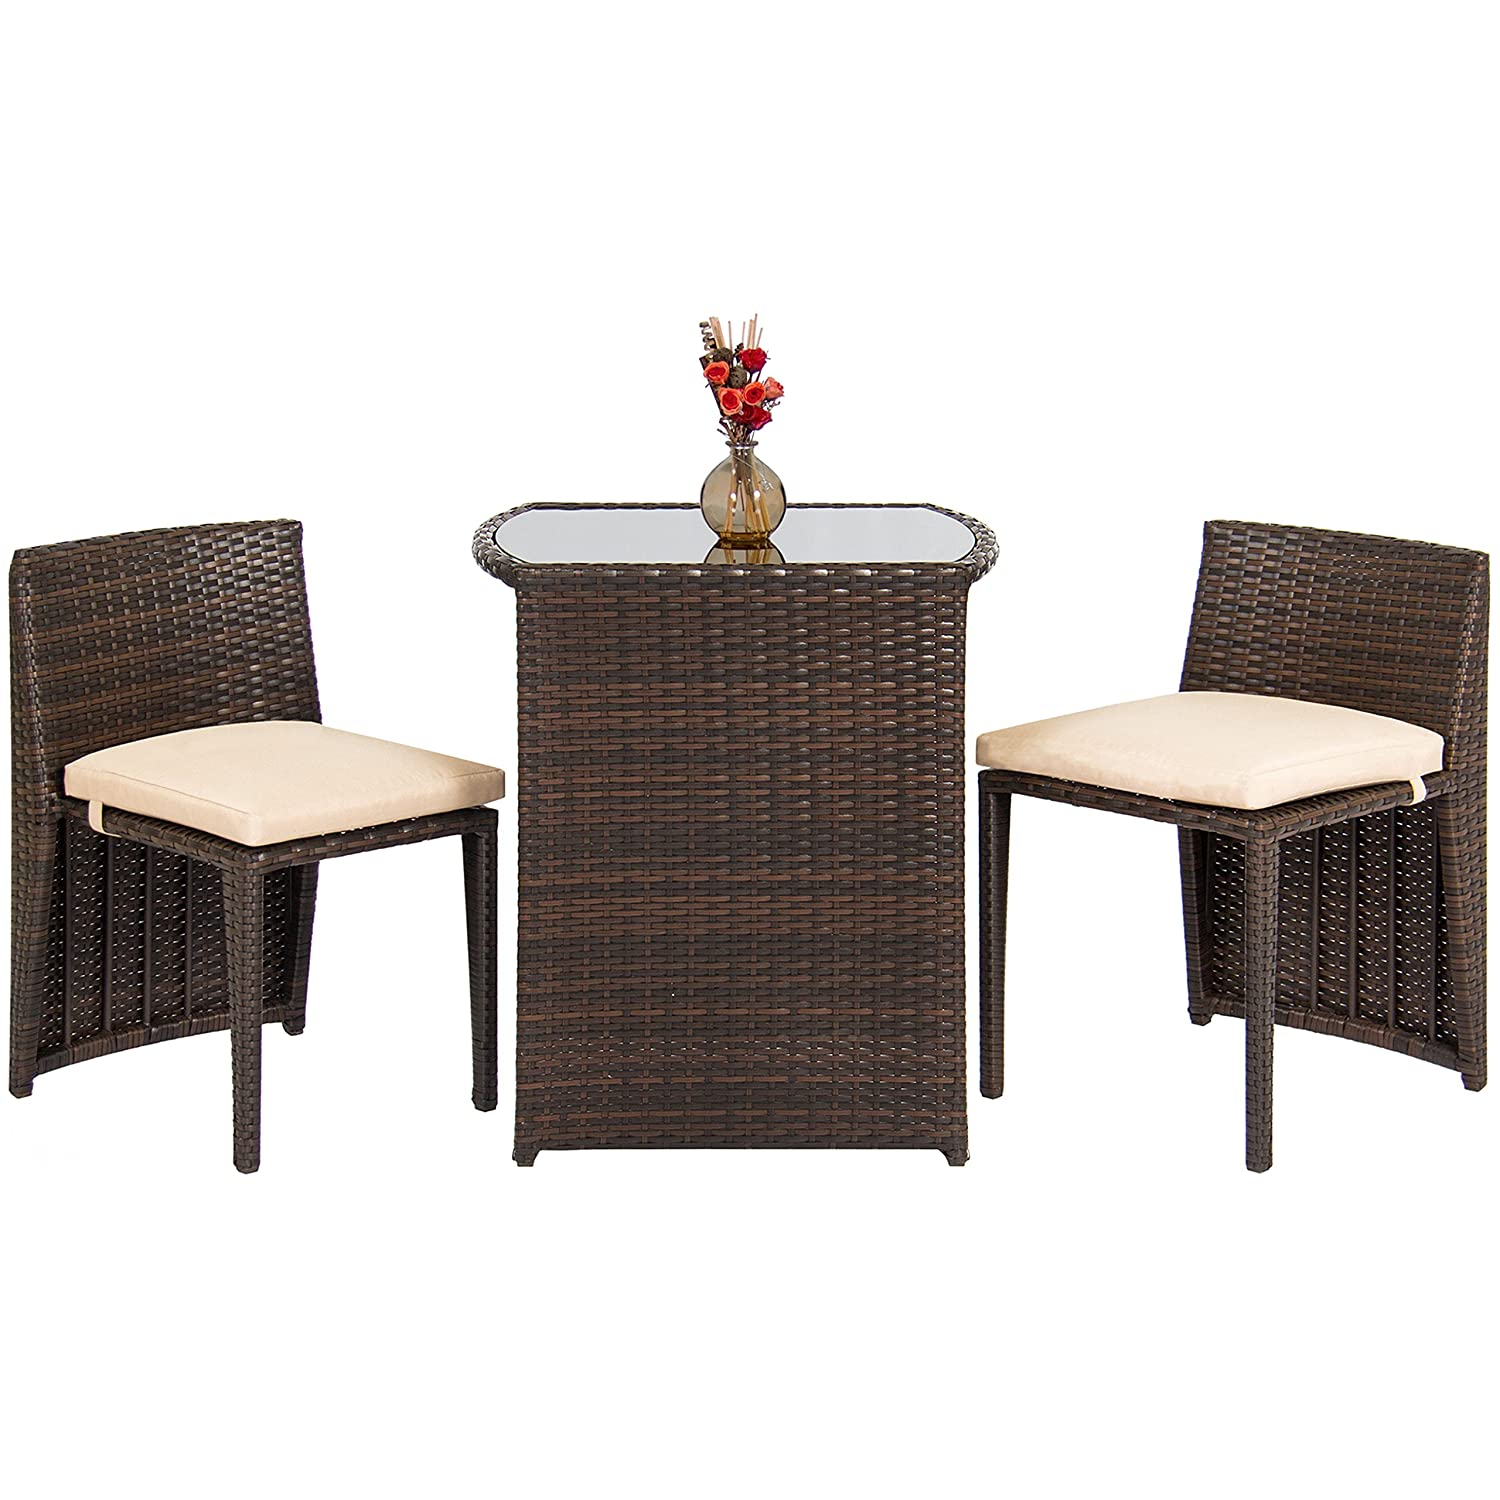 Amazon.com: Best Choice Products 3 Piece Wicker Bistro Set W/Glass Top Table,  2 Chairs, Space Saving Design   Brown: Garden U0026 Outdoor